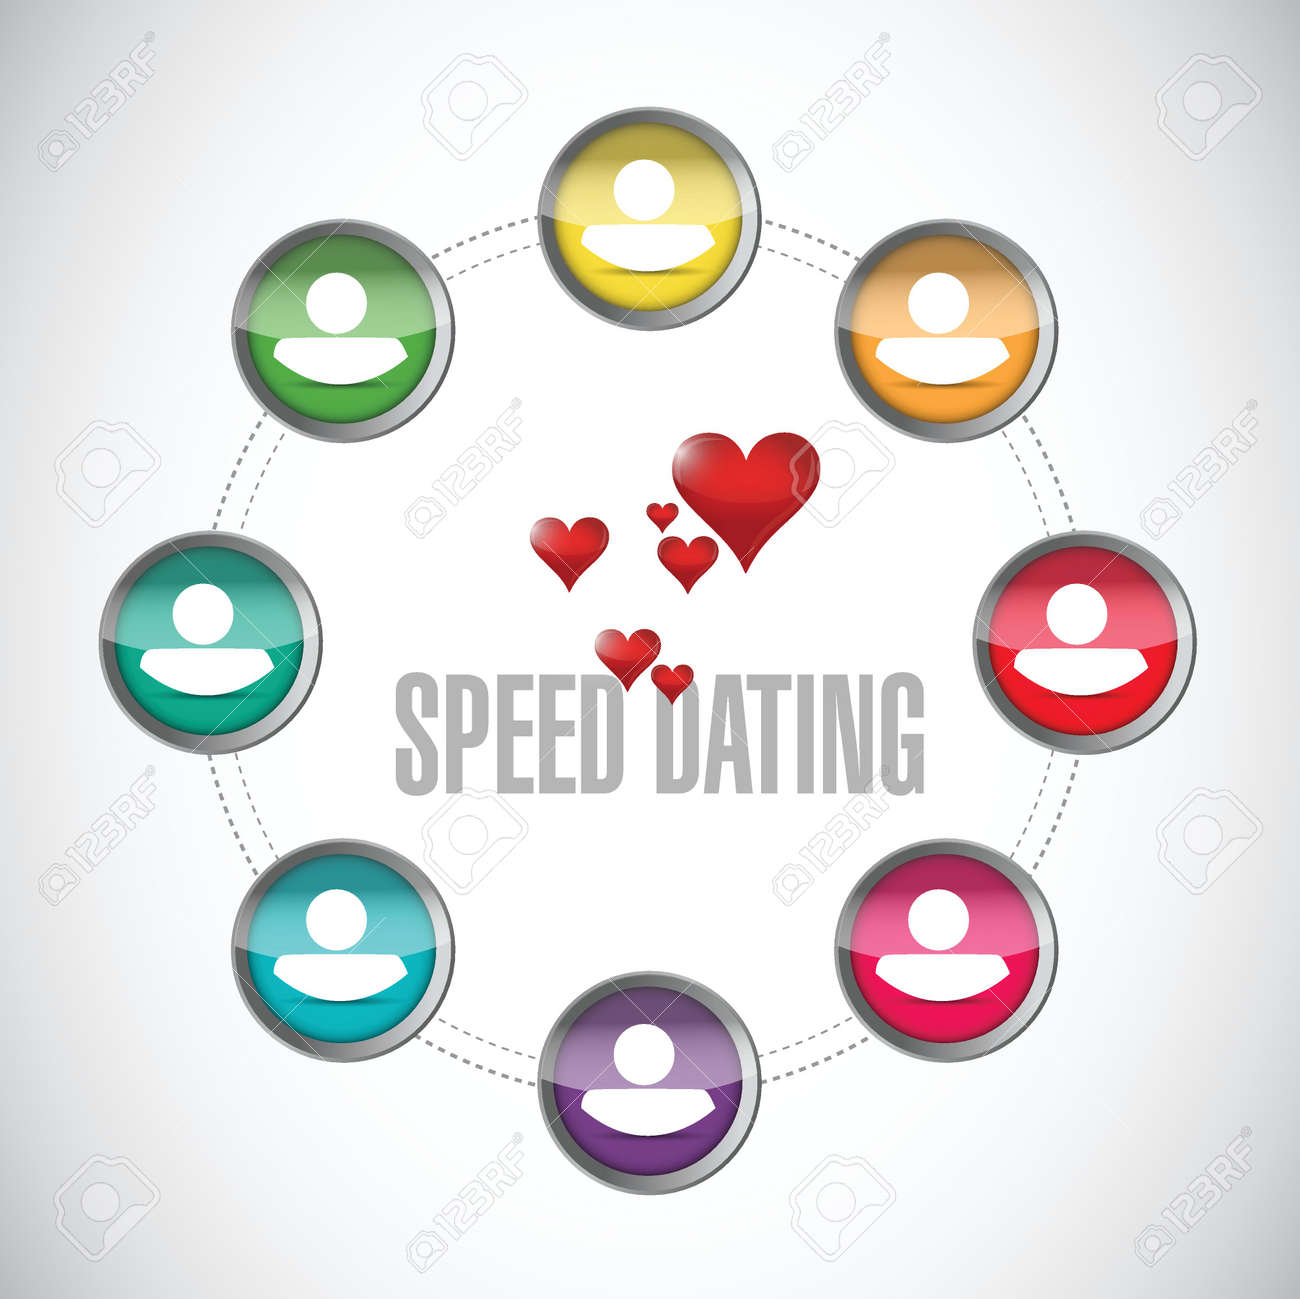 Me2 dating site Speed dating tirana.